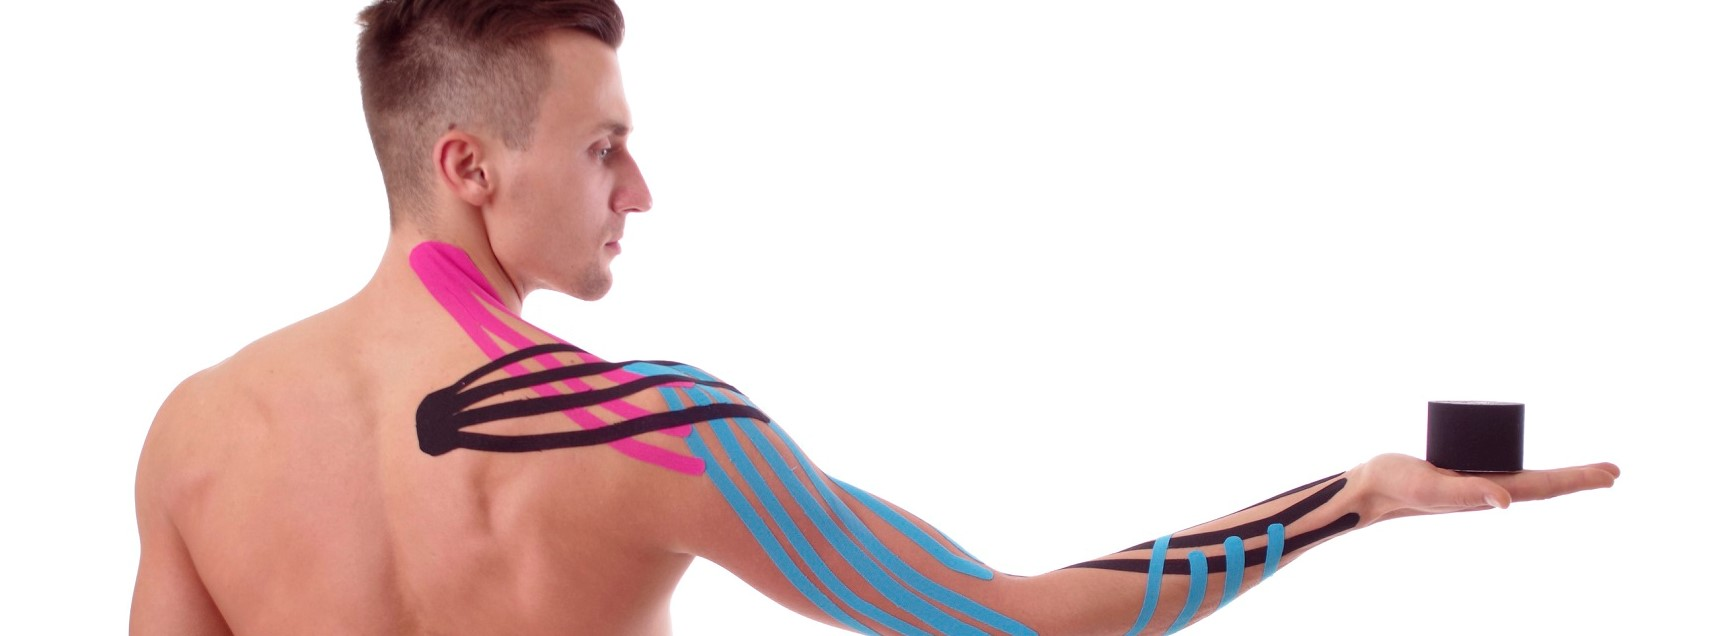 Kinesiology tape on taped arm